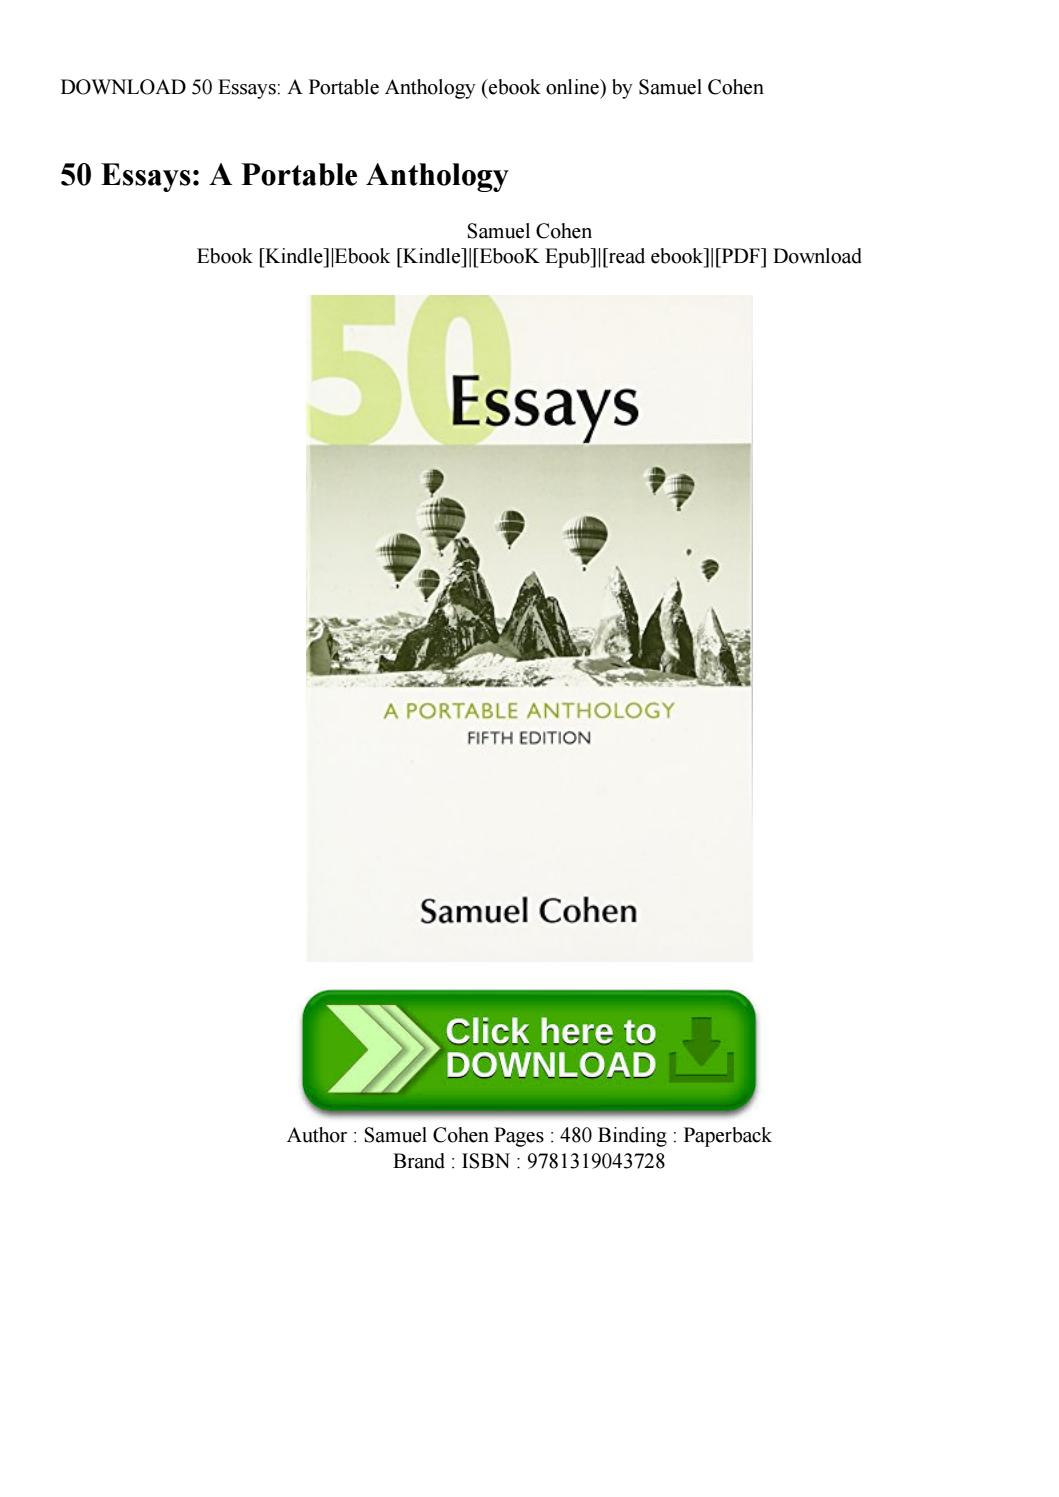 007 Essays 5th Edition Page 1 Essay Imposing 50 Fifty Great Pdf Free A Portable Anthology Ebook Full